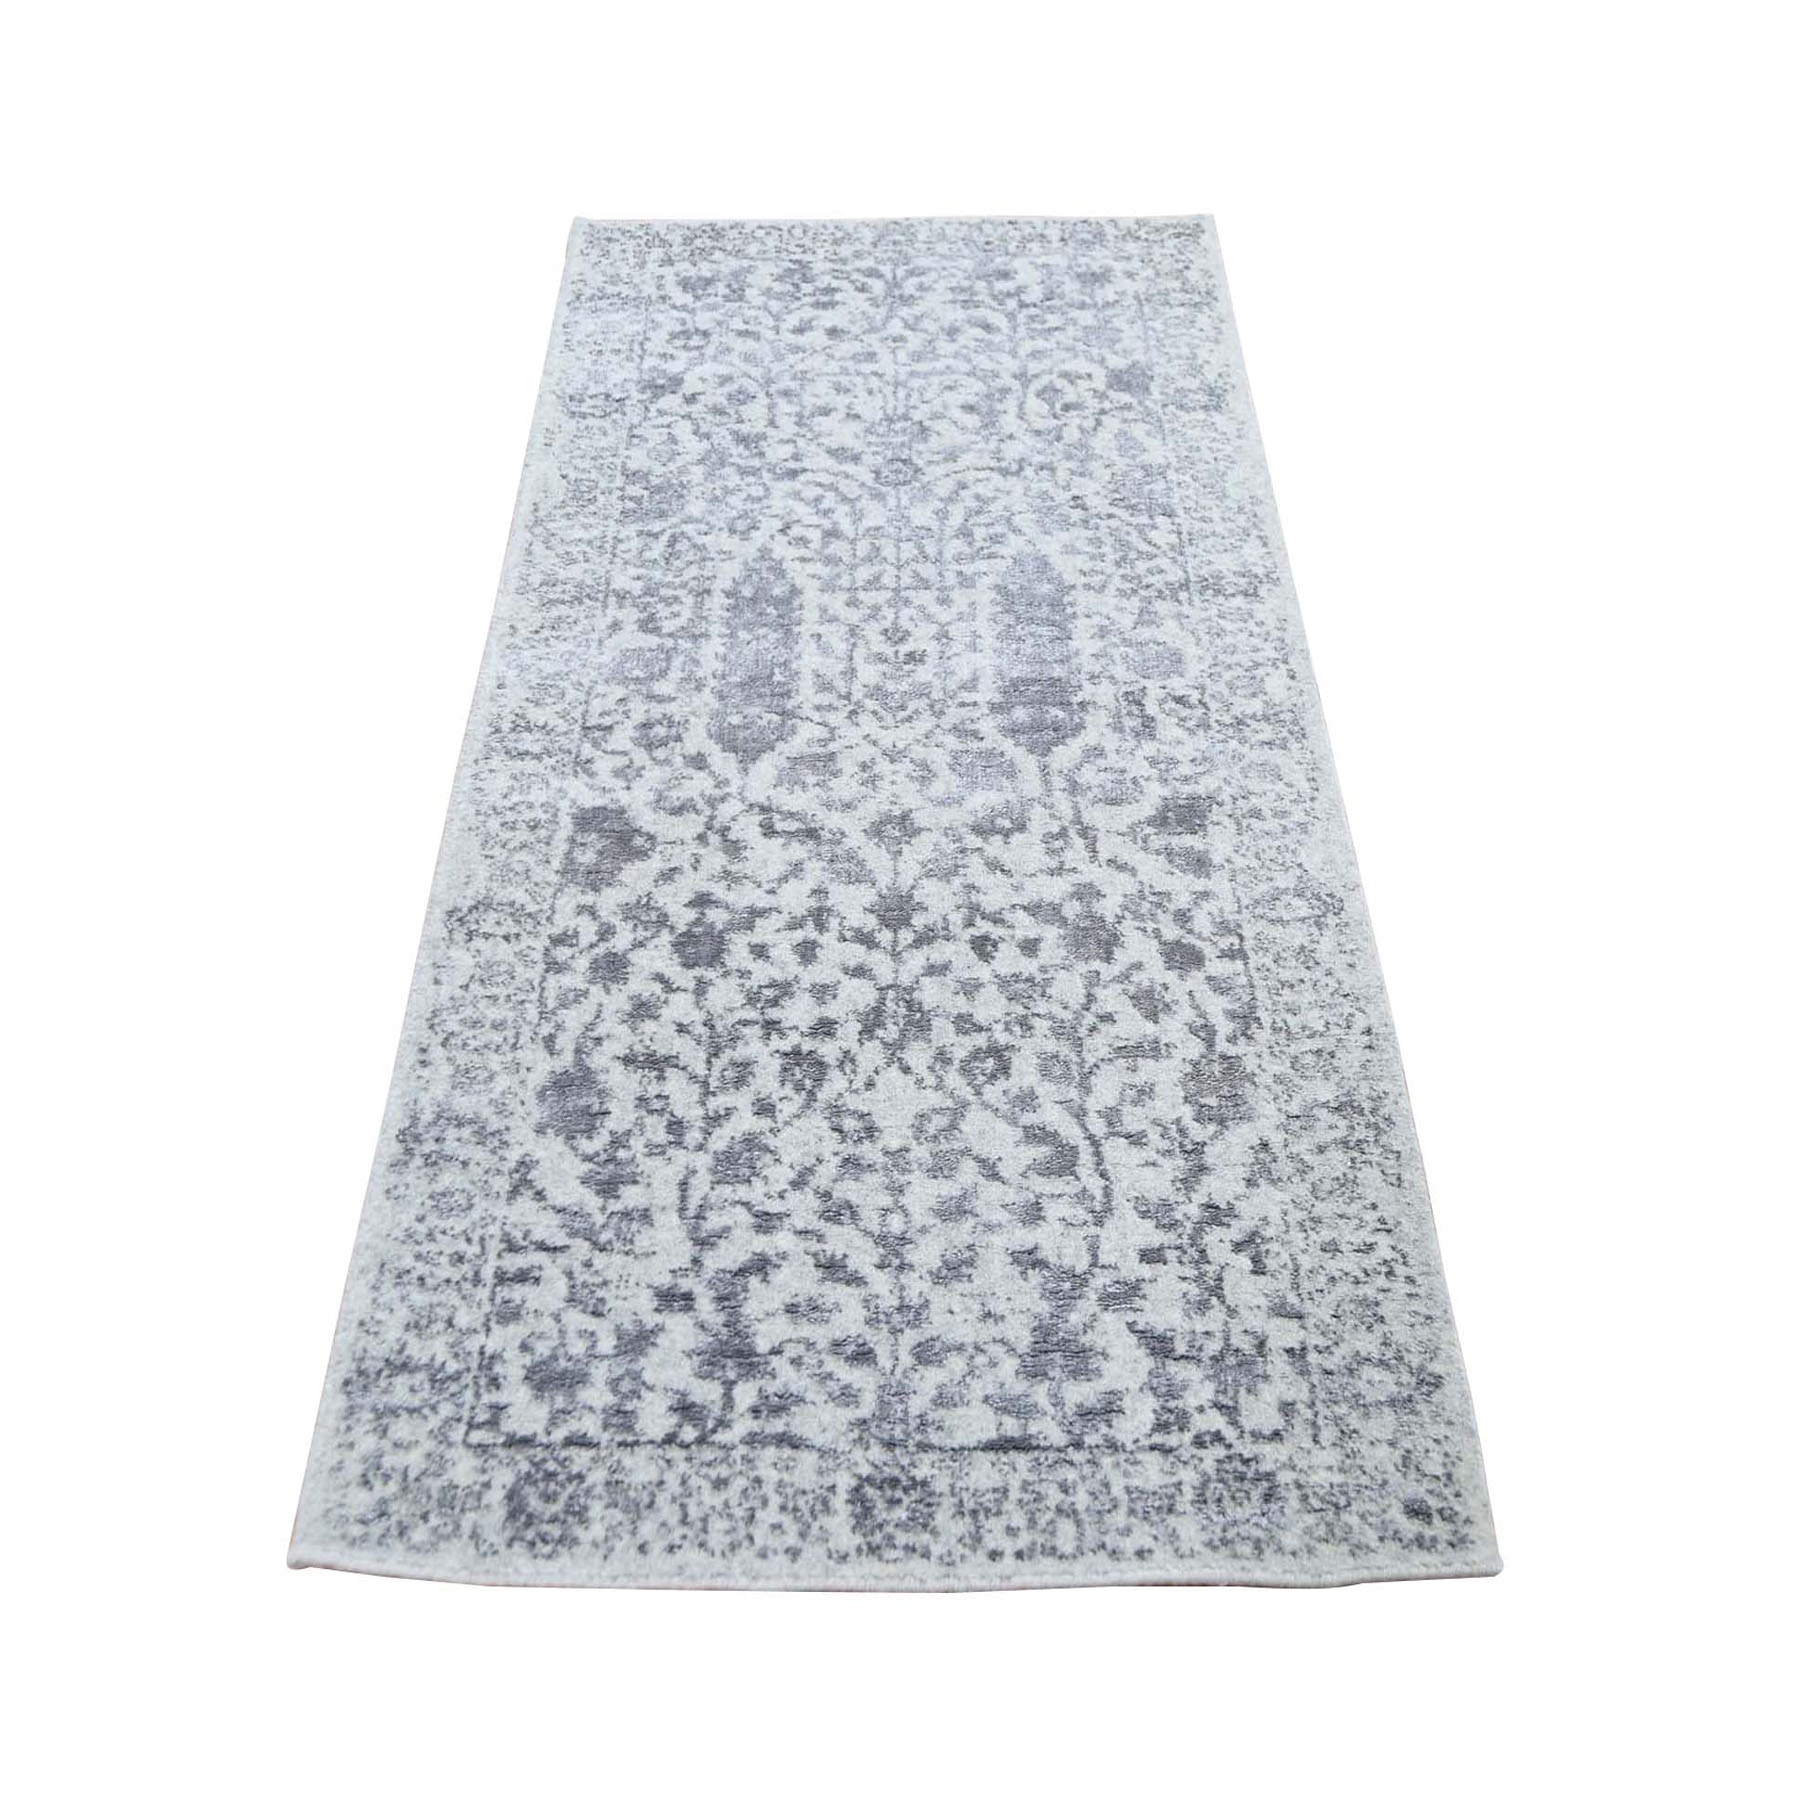 "2'5""X6' Jacquard Hand-Loomed Gray Broken Cypress Tree Design Silken Thick And Plush Runner Oriental Rug moad9aa0"